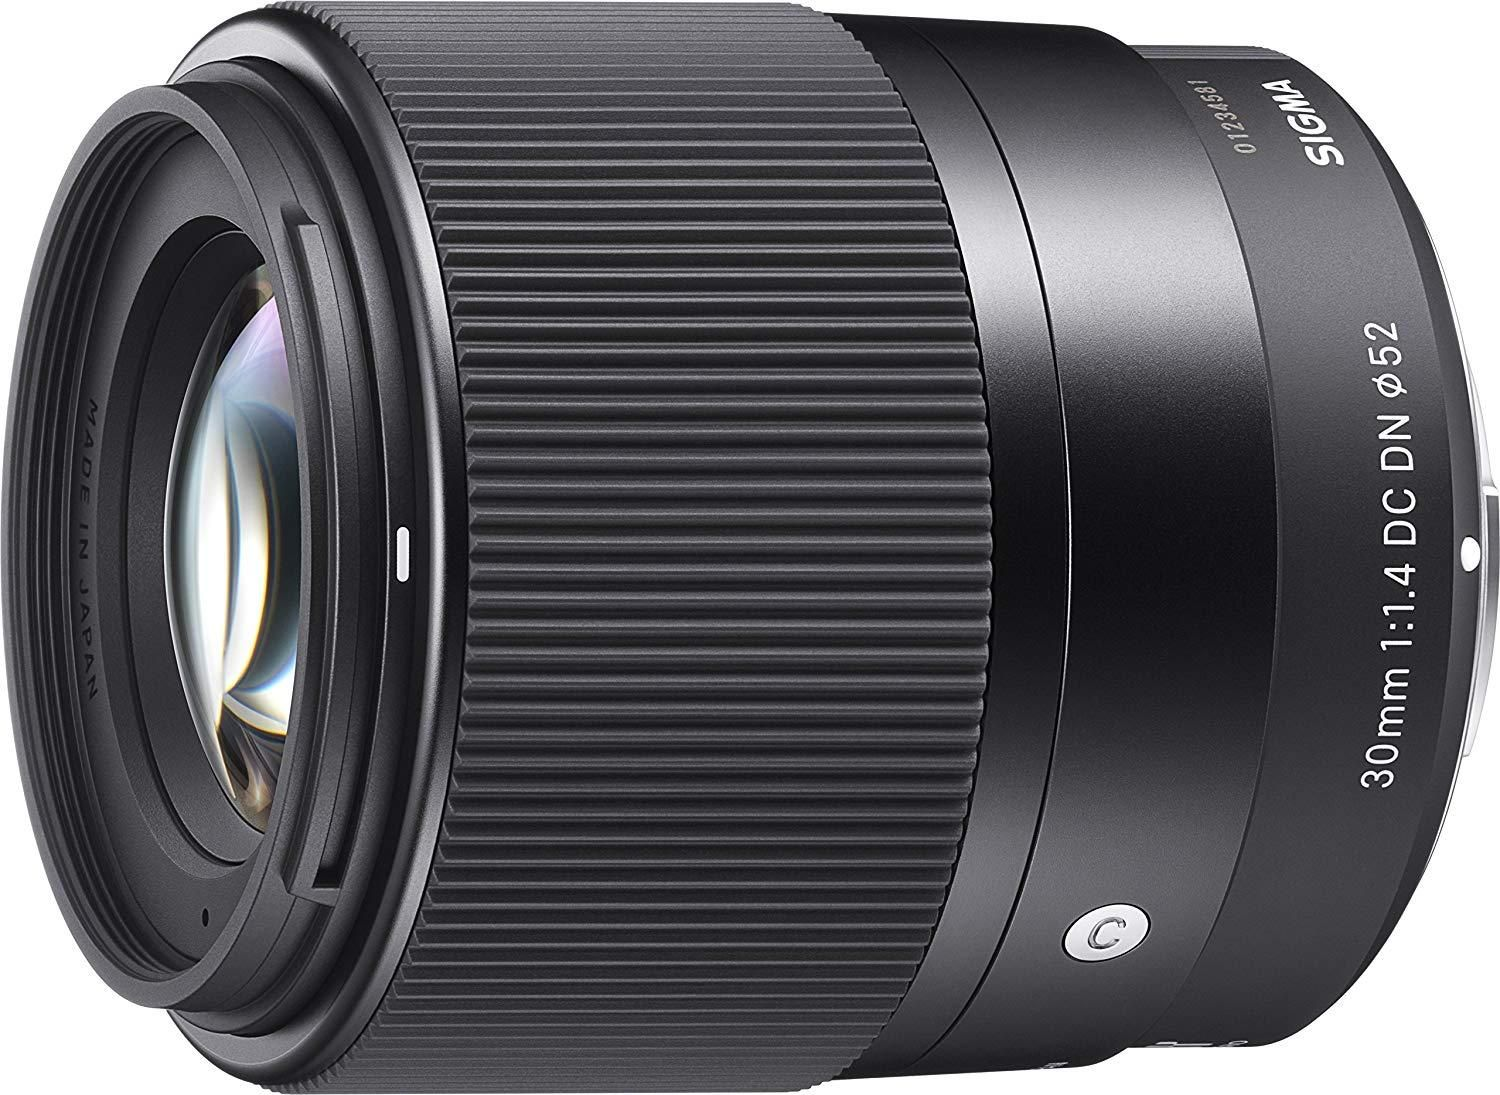 Sigma 30mm F 1 4 Dc Dn Contemporary Lens For Sony E Mount Mirrorless With Bundle In 2021 Best Camera Lenses Mirrorless Camera Sony E Mount